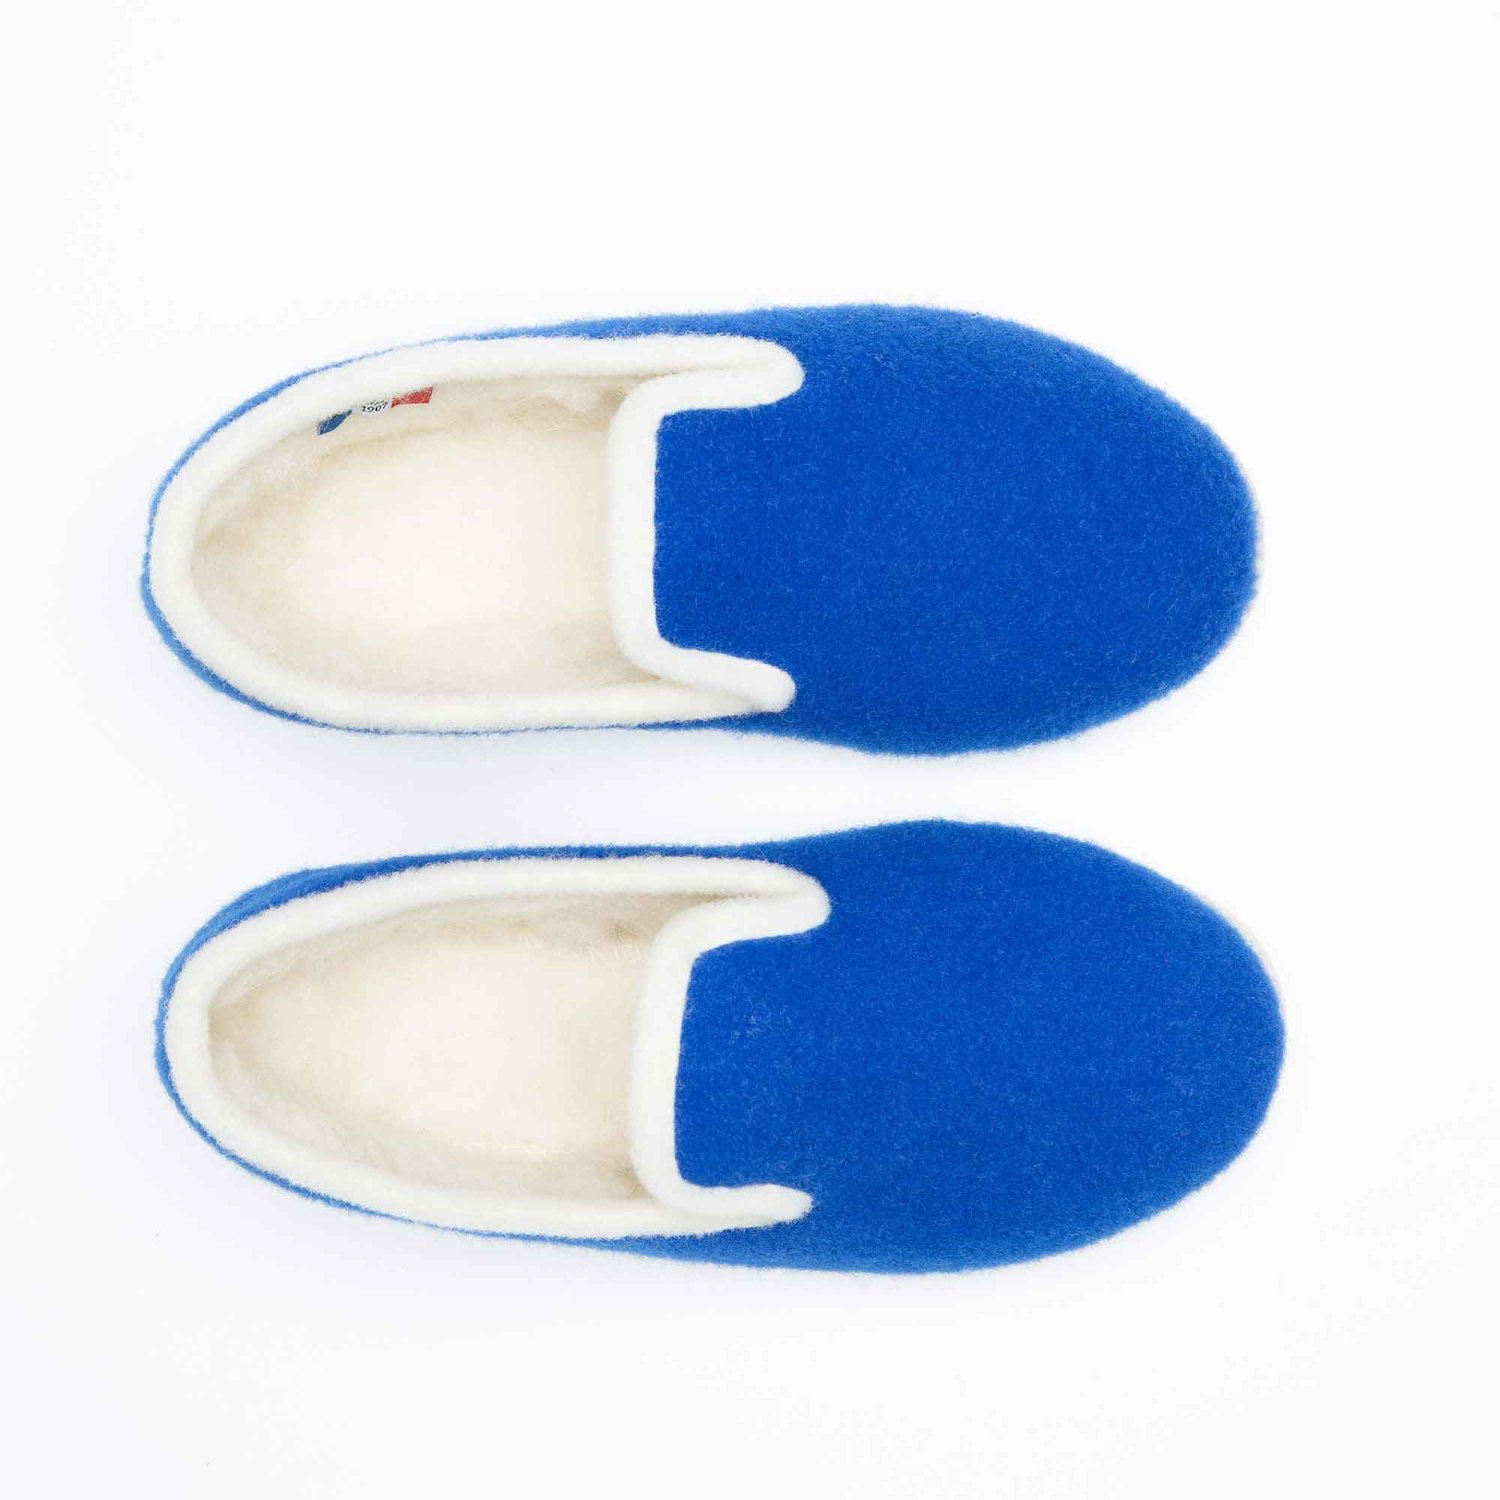 jeffontheroad-gift-ideas-home-port-franc-slippers